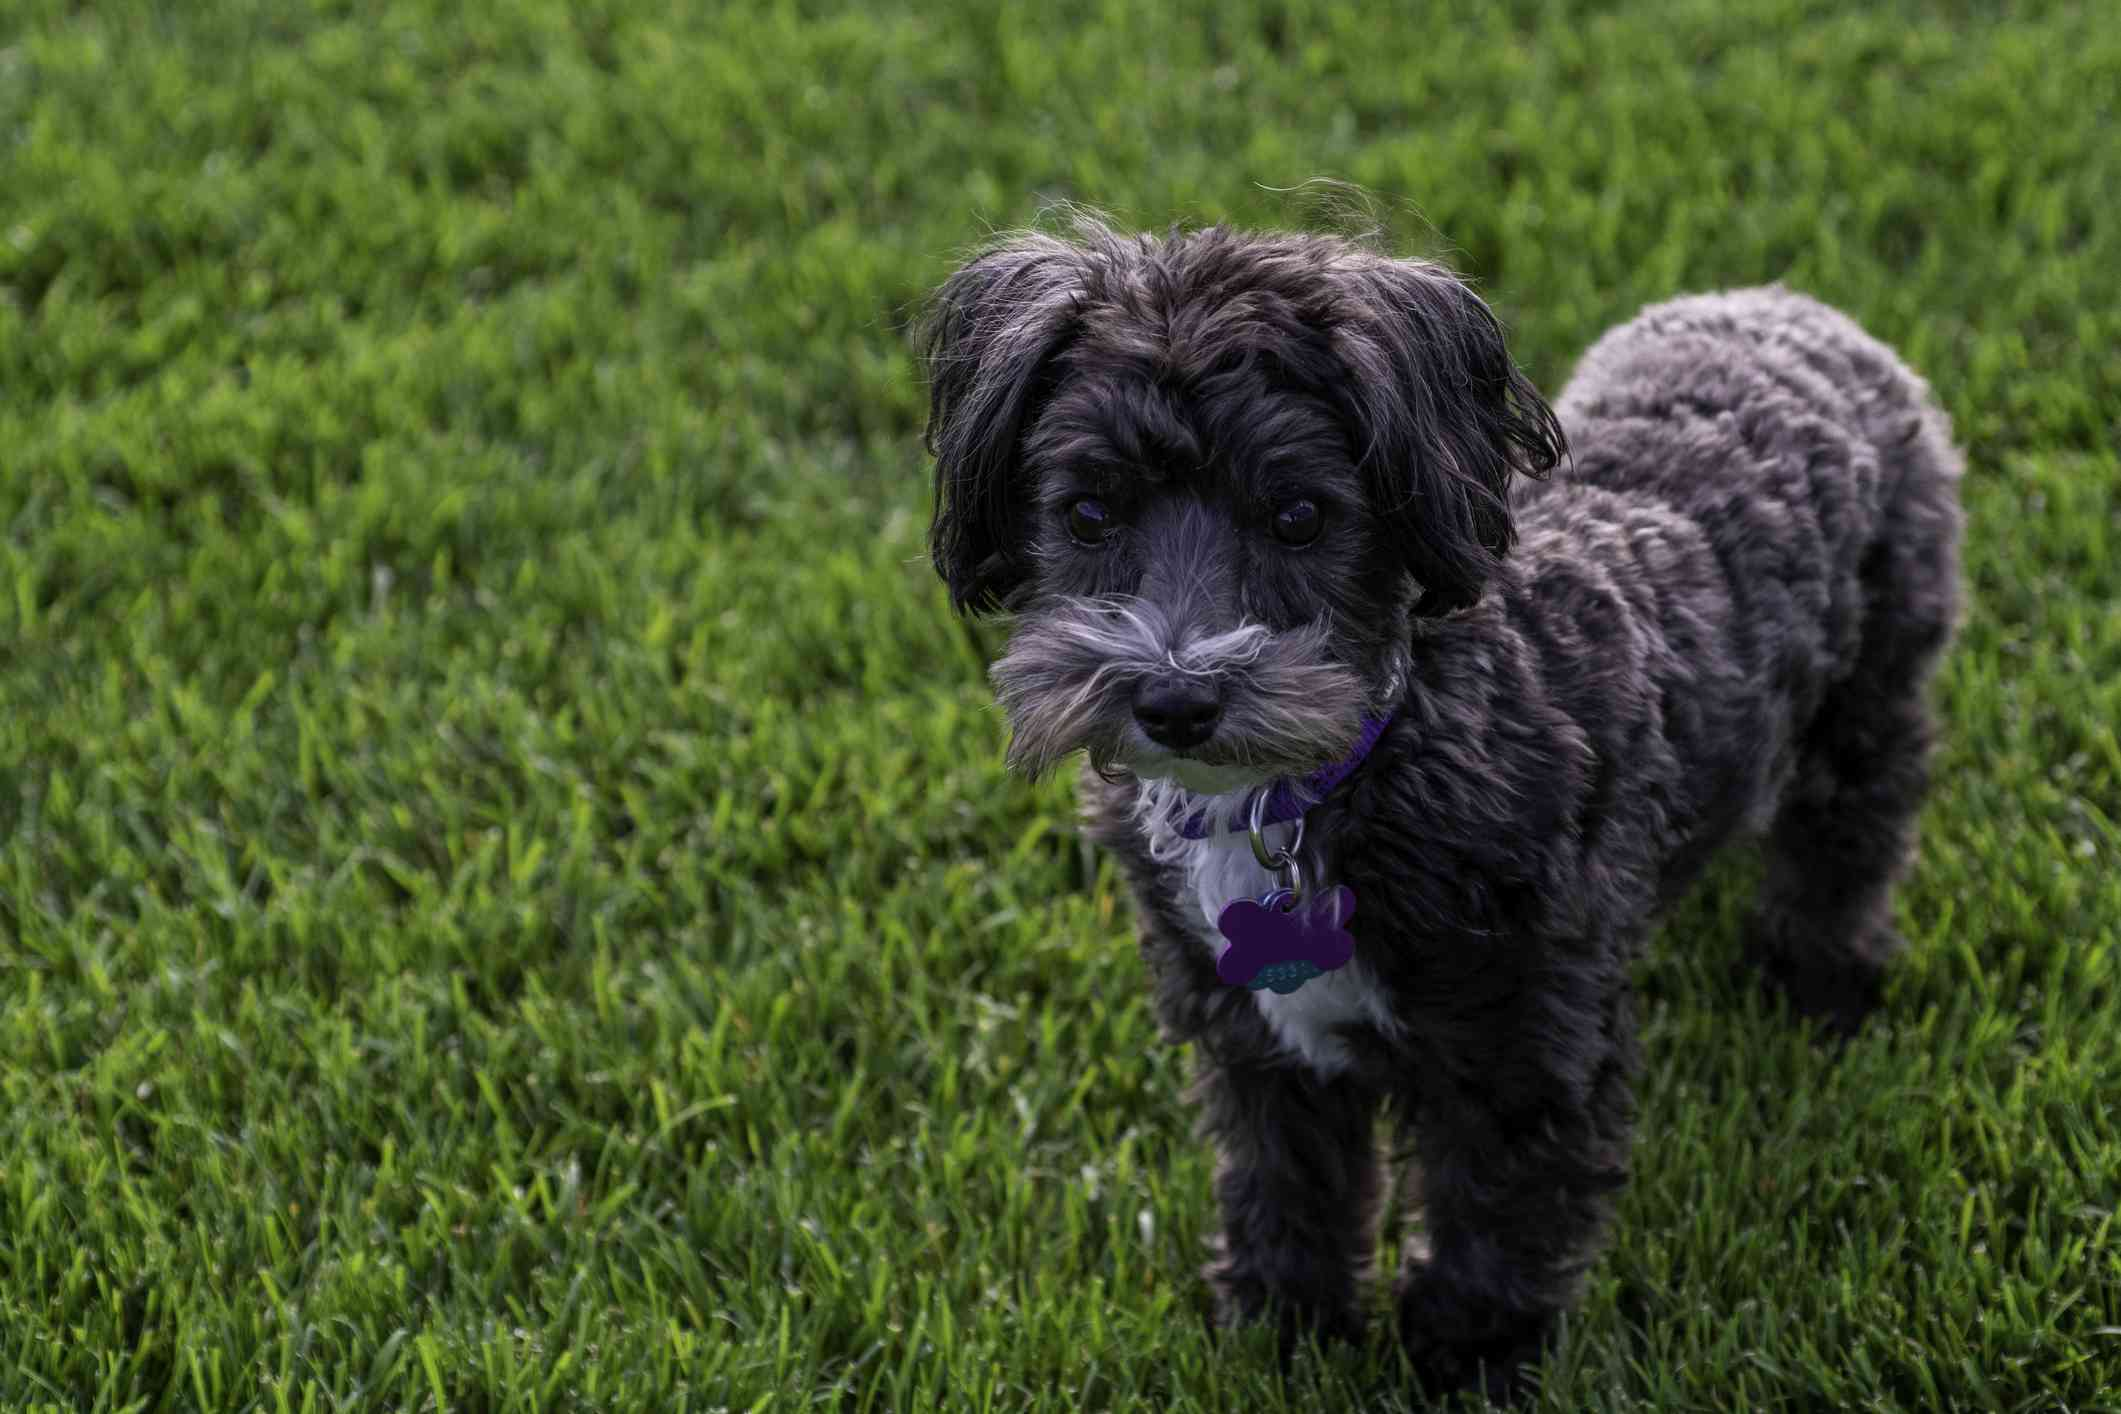 Black maltipoo standing in the grass